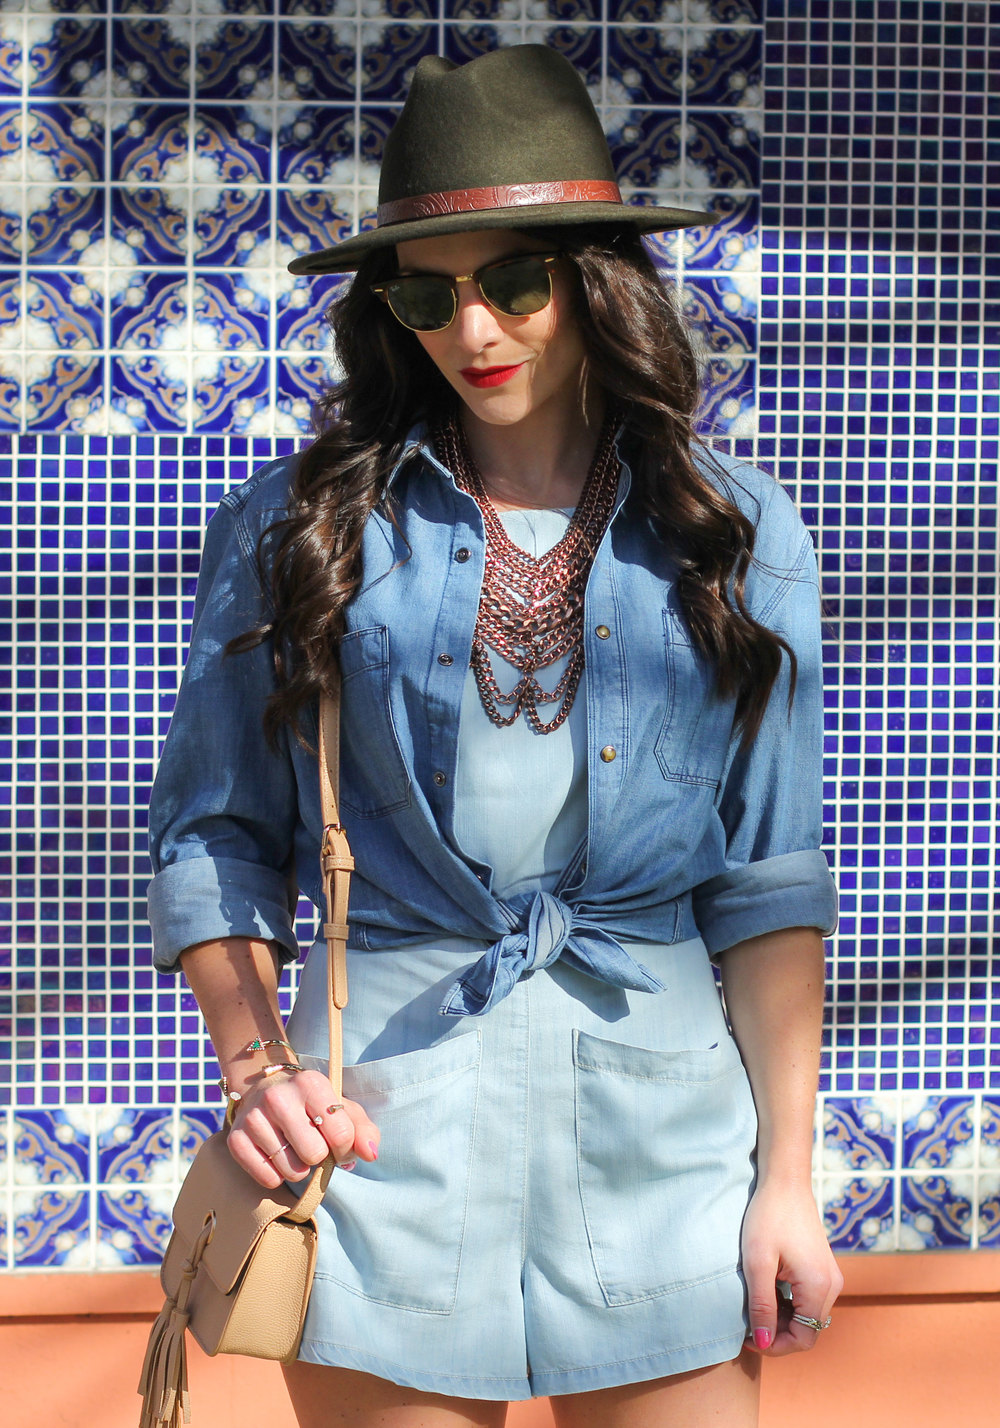 Spring Fashion, Denim Boyfriend Shirt, Baublebar Courtney Bib Necklace, BDG High Neck Chambray Romper, Forever 21 Faux Leather Tassel Crossbody, Ray-Ban Clubmaster Sunglasses